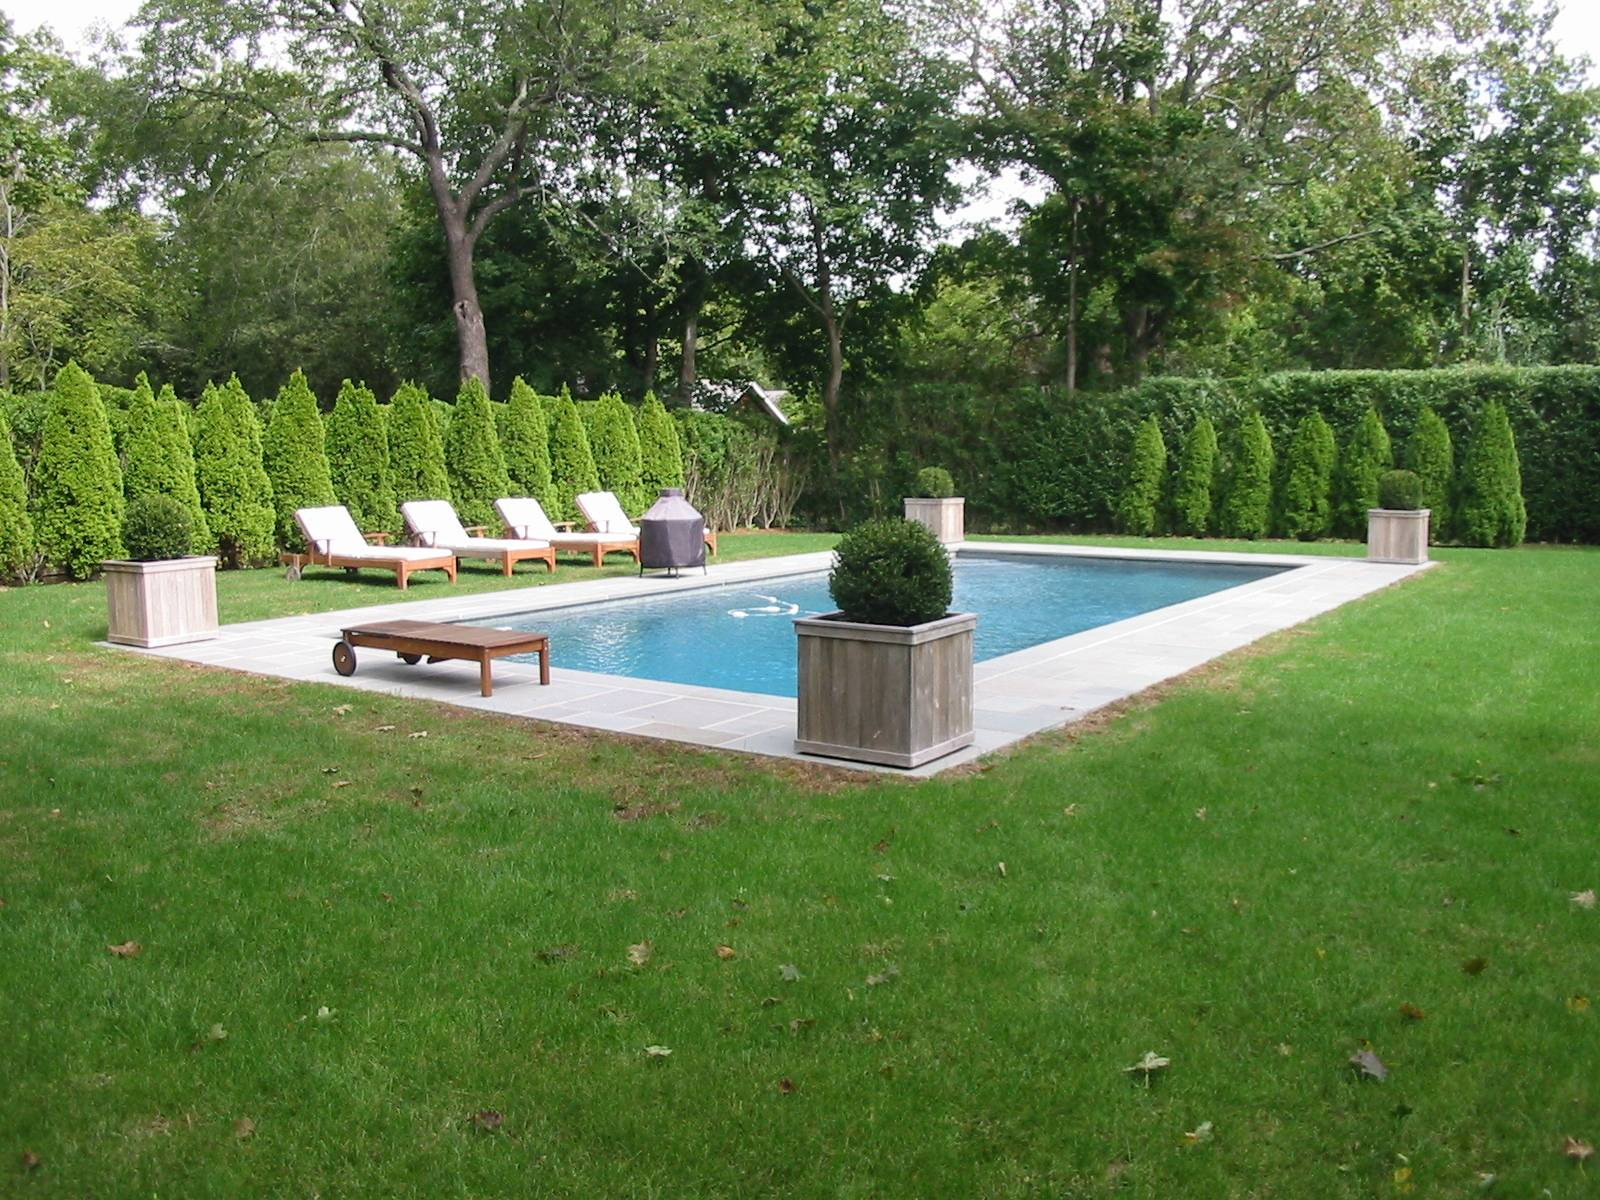 Gunite Pools Kazdin Pools Spas Southampton Ny Long Island Pool Company